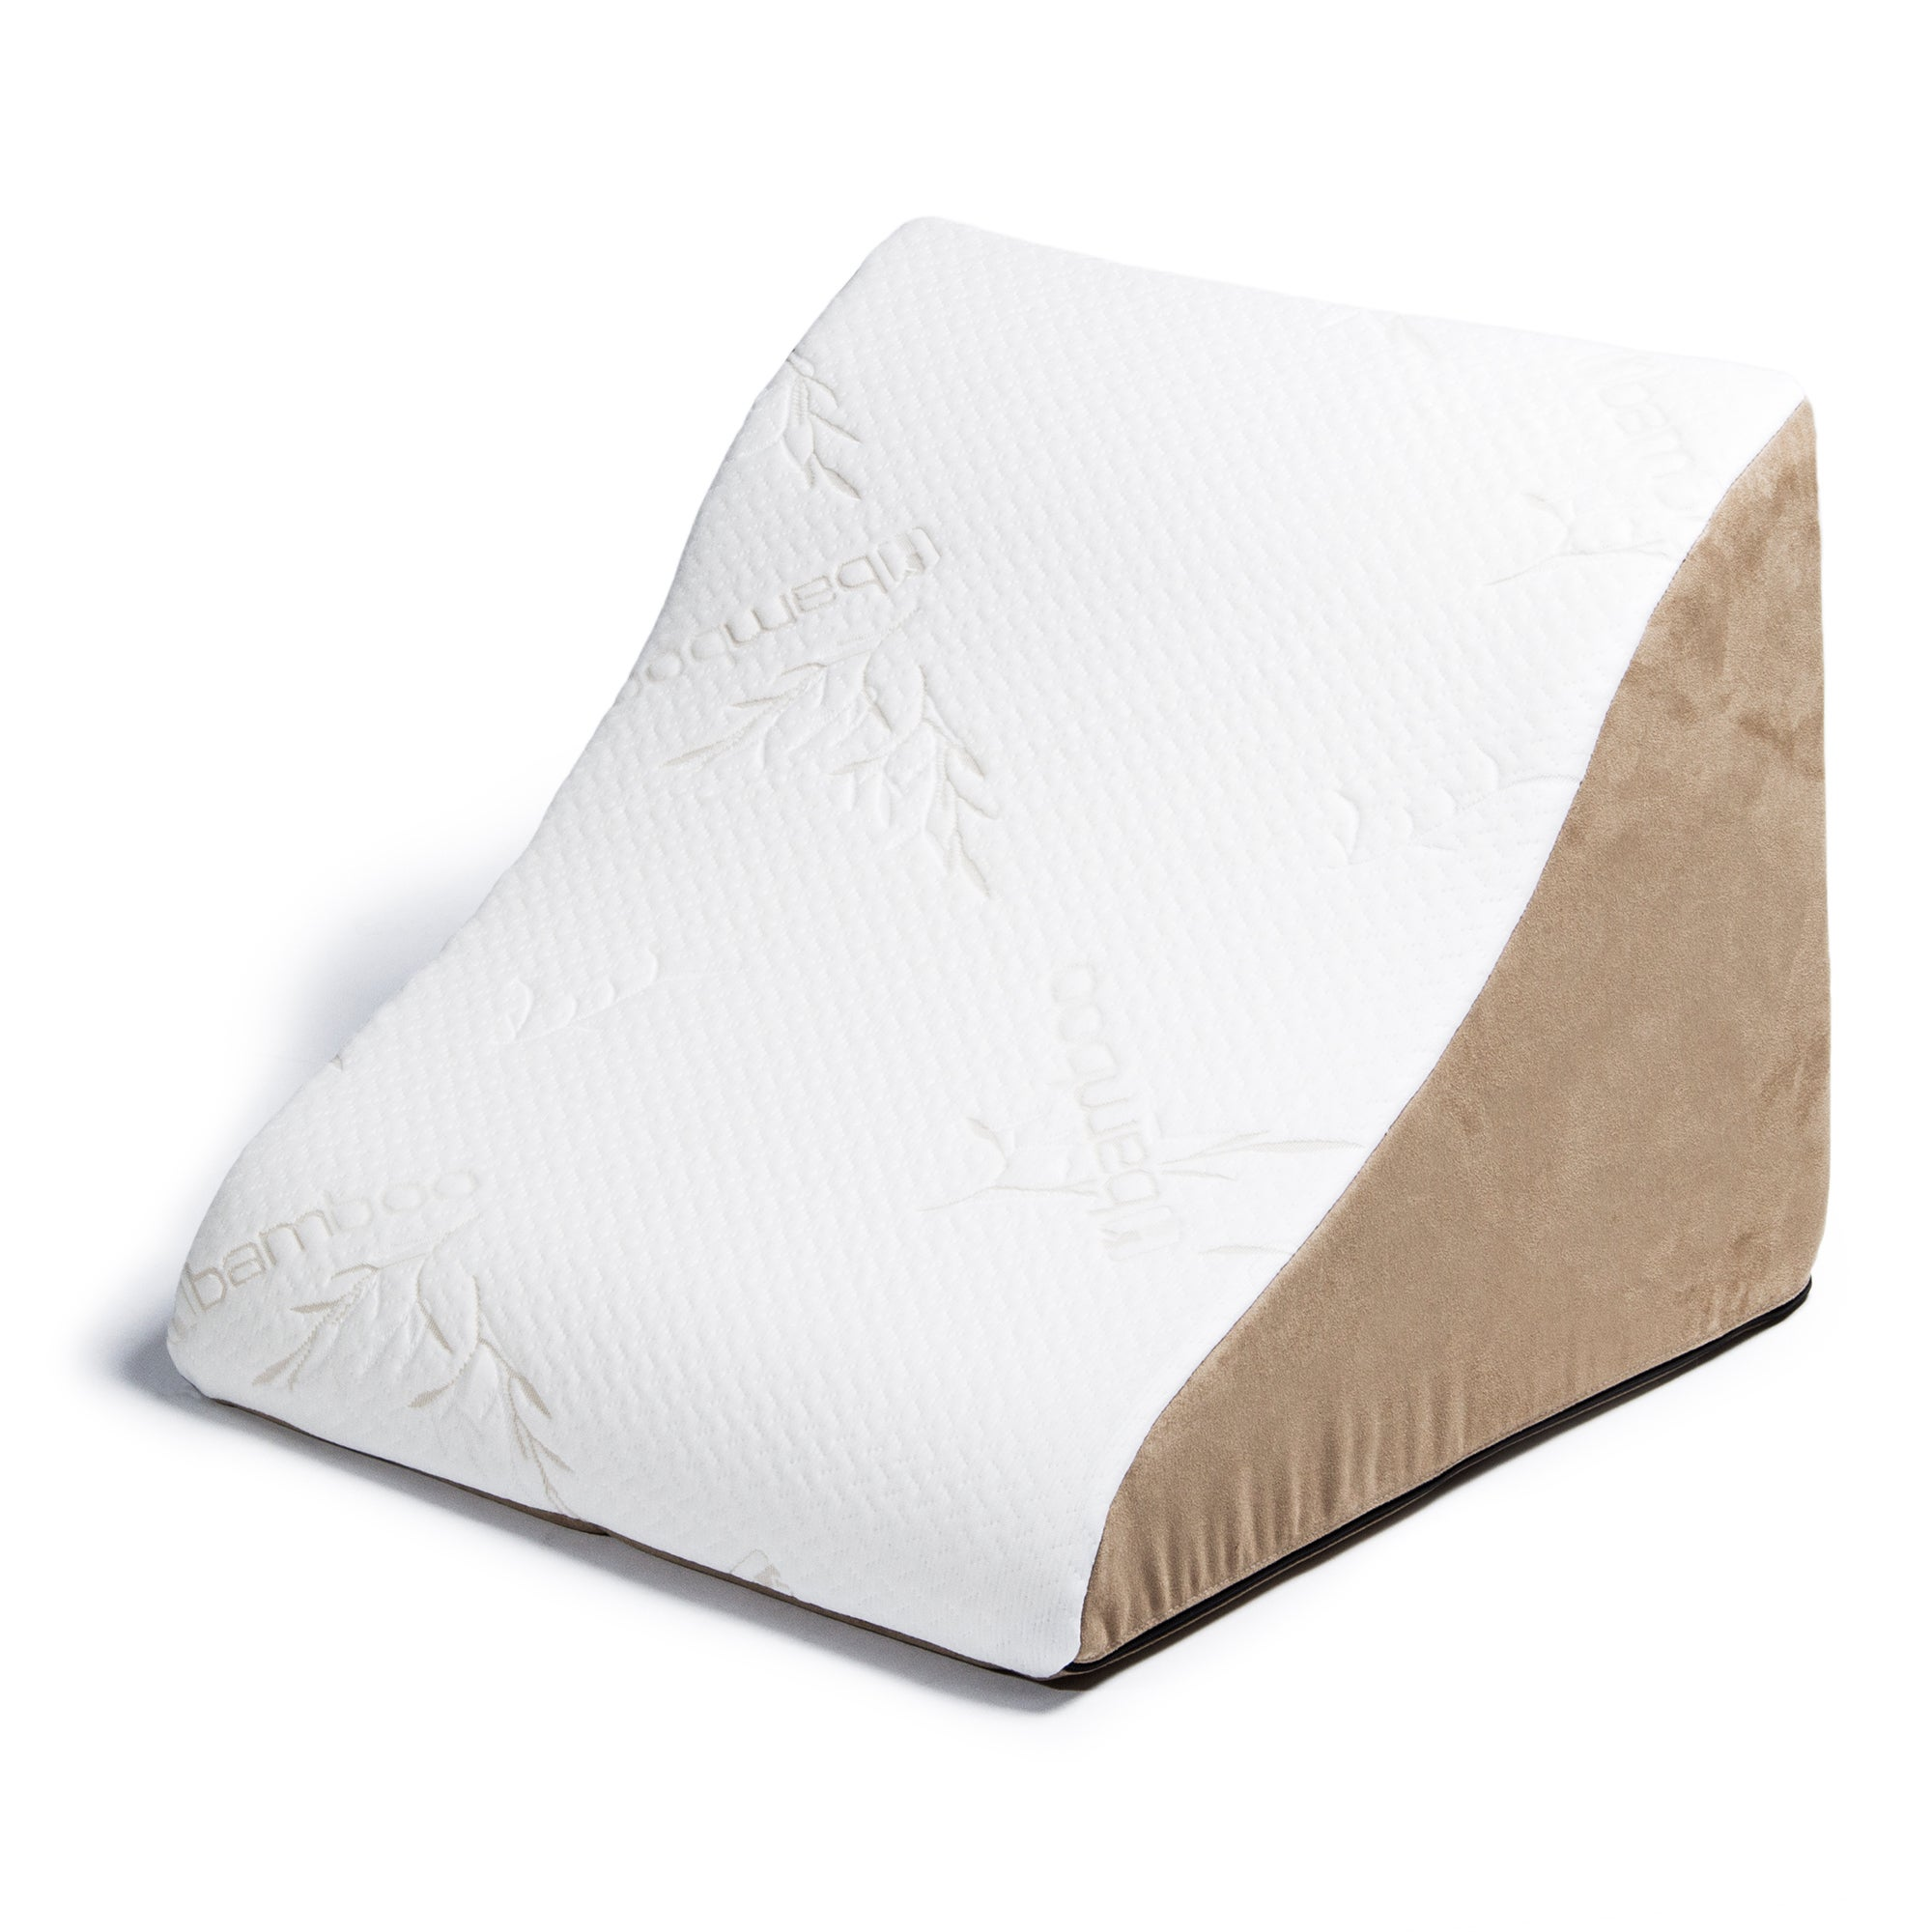 reviews count bsm stitch more sheet sheets eyelet hem newport bamboo detail thread set a decorative with products pillow ivory